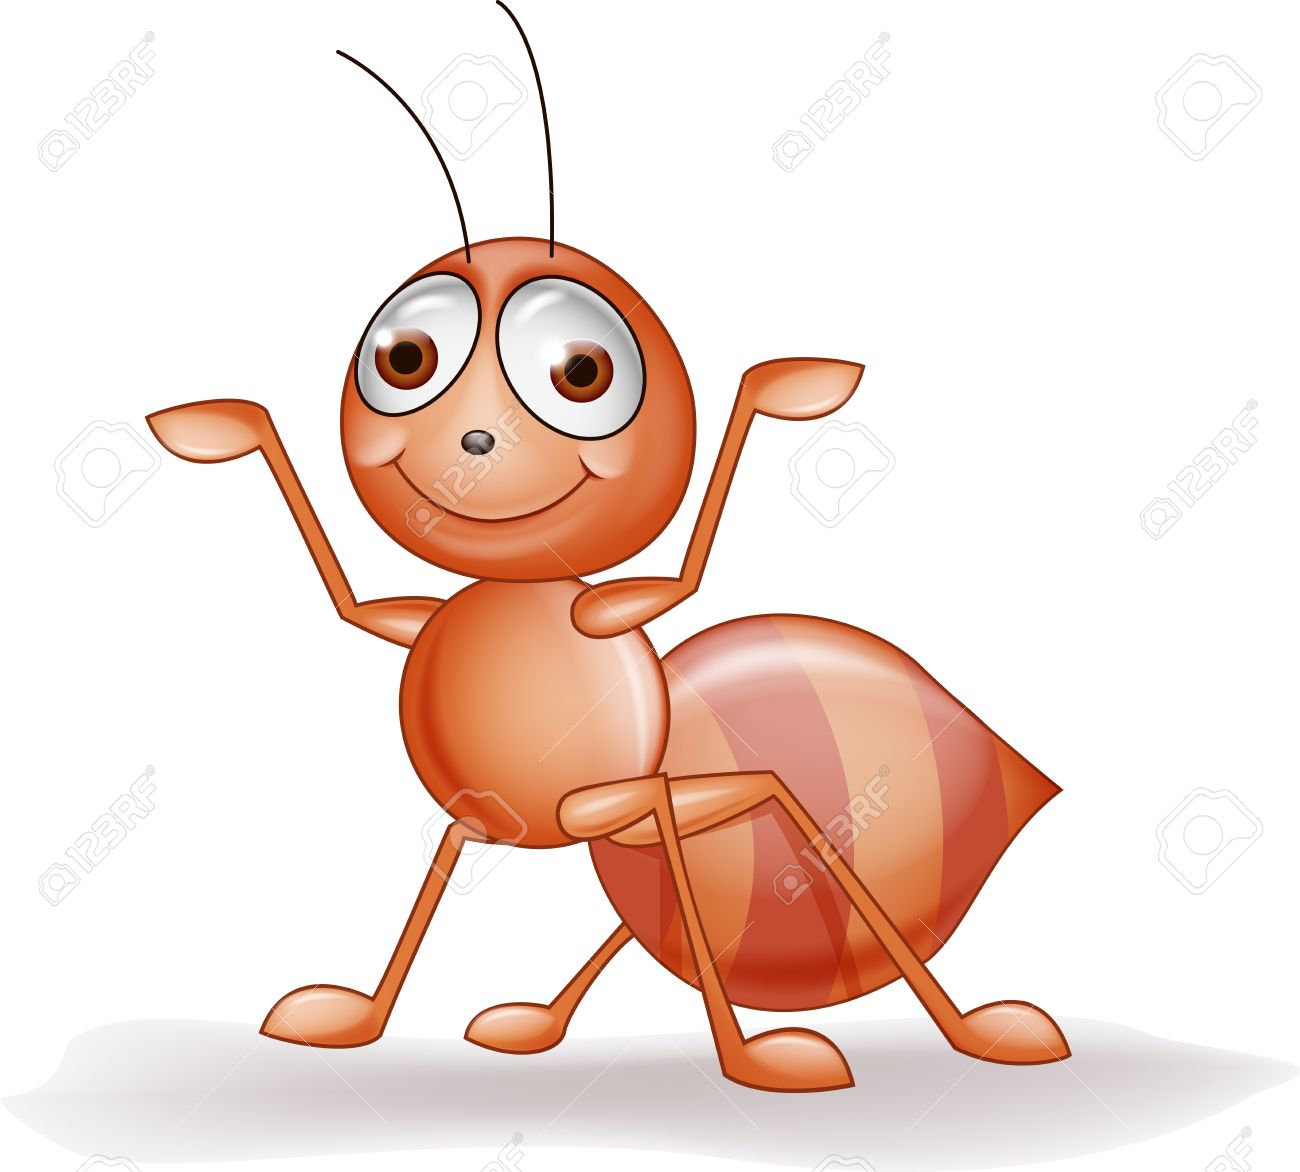 Orange pencil and in. Ants clipart friendly